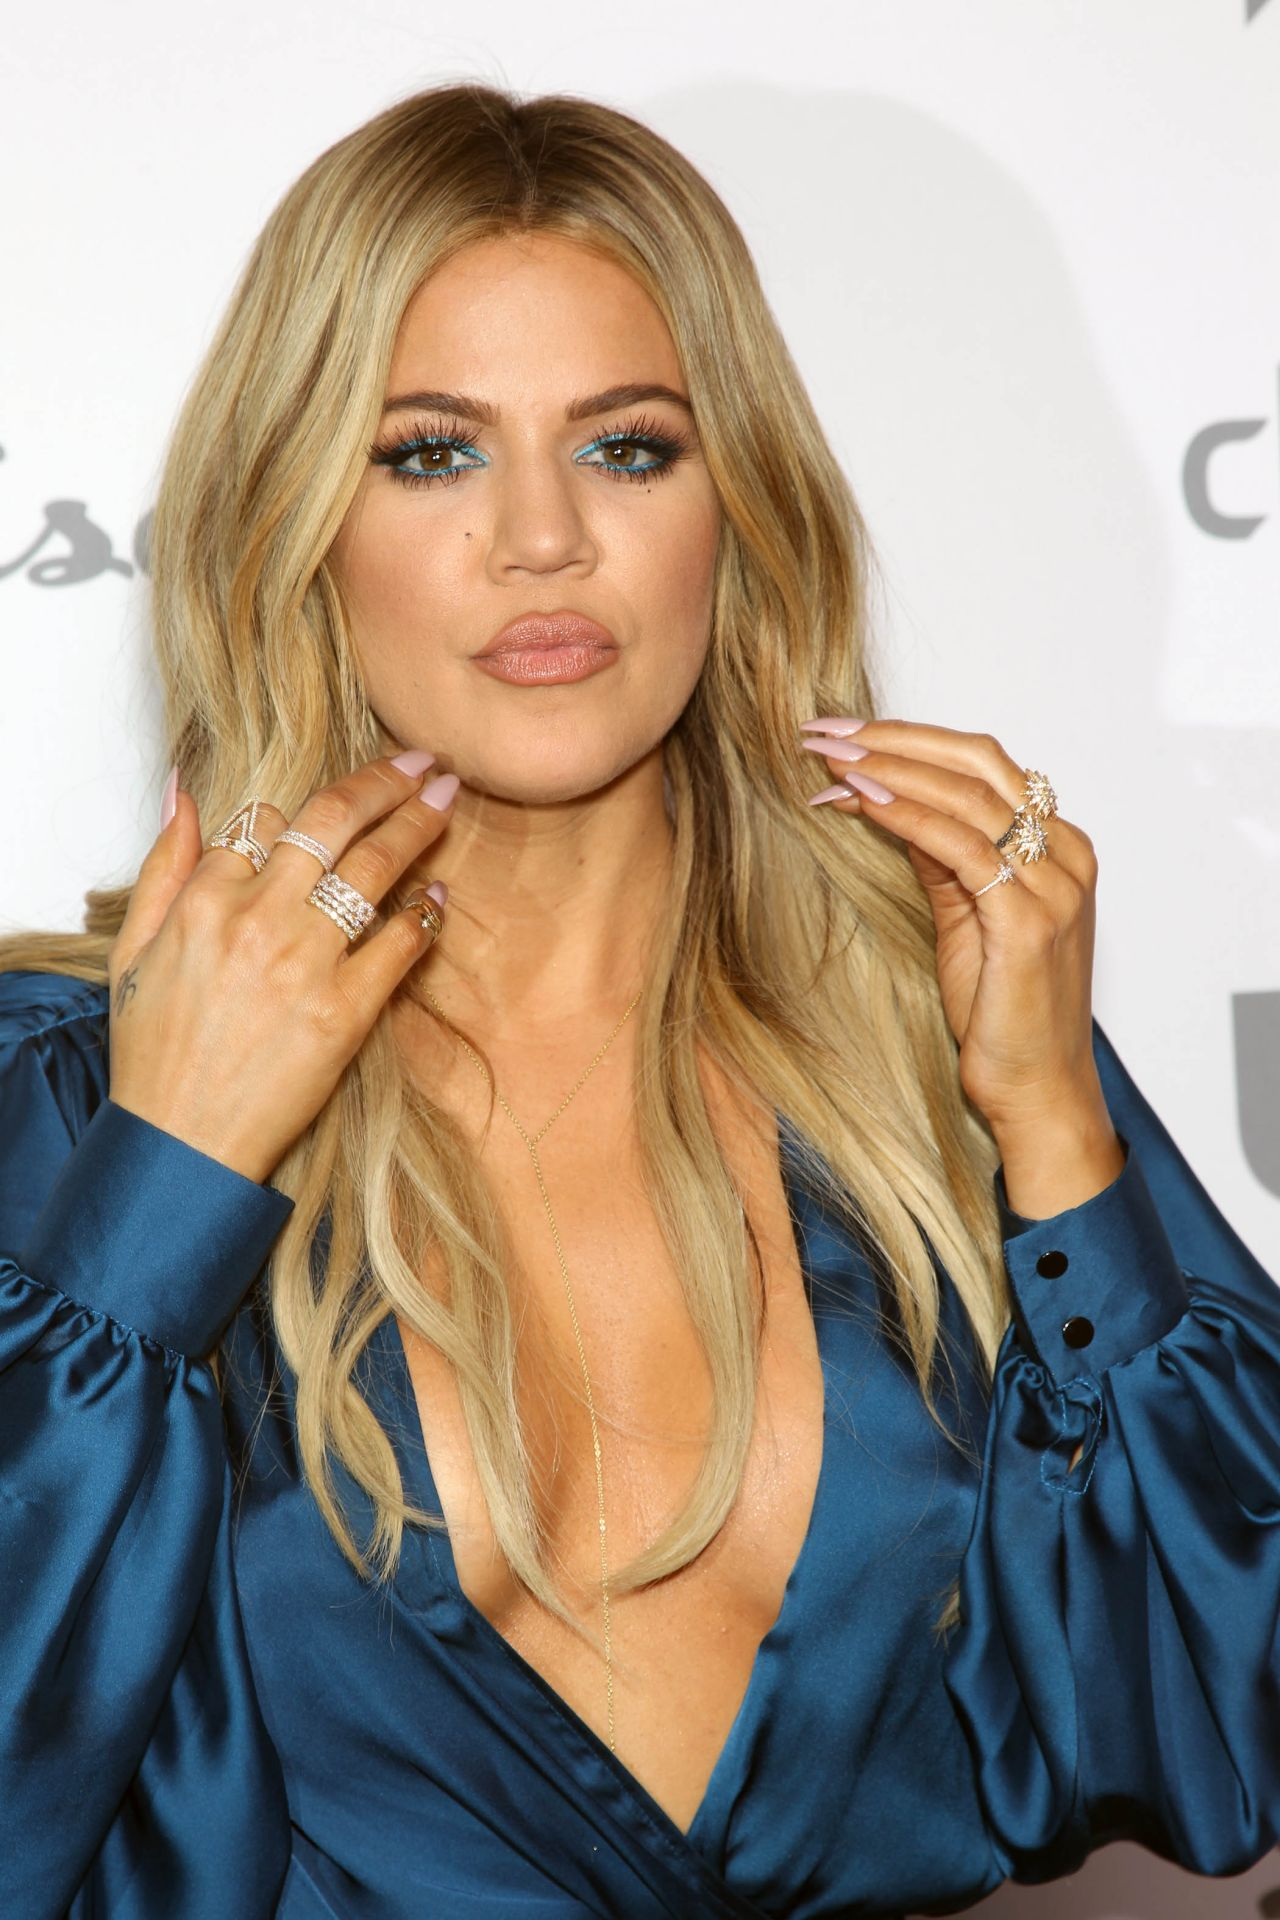 Khloe Kardashian 2015 Nbc Universal Cable Entertainment